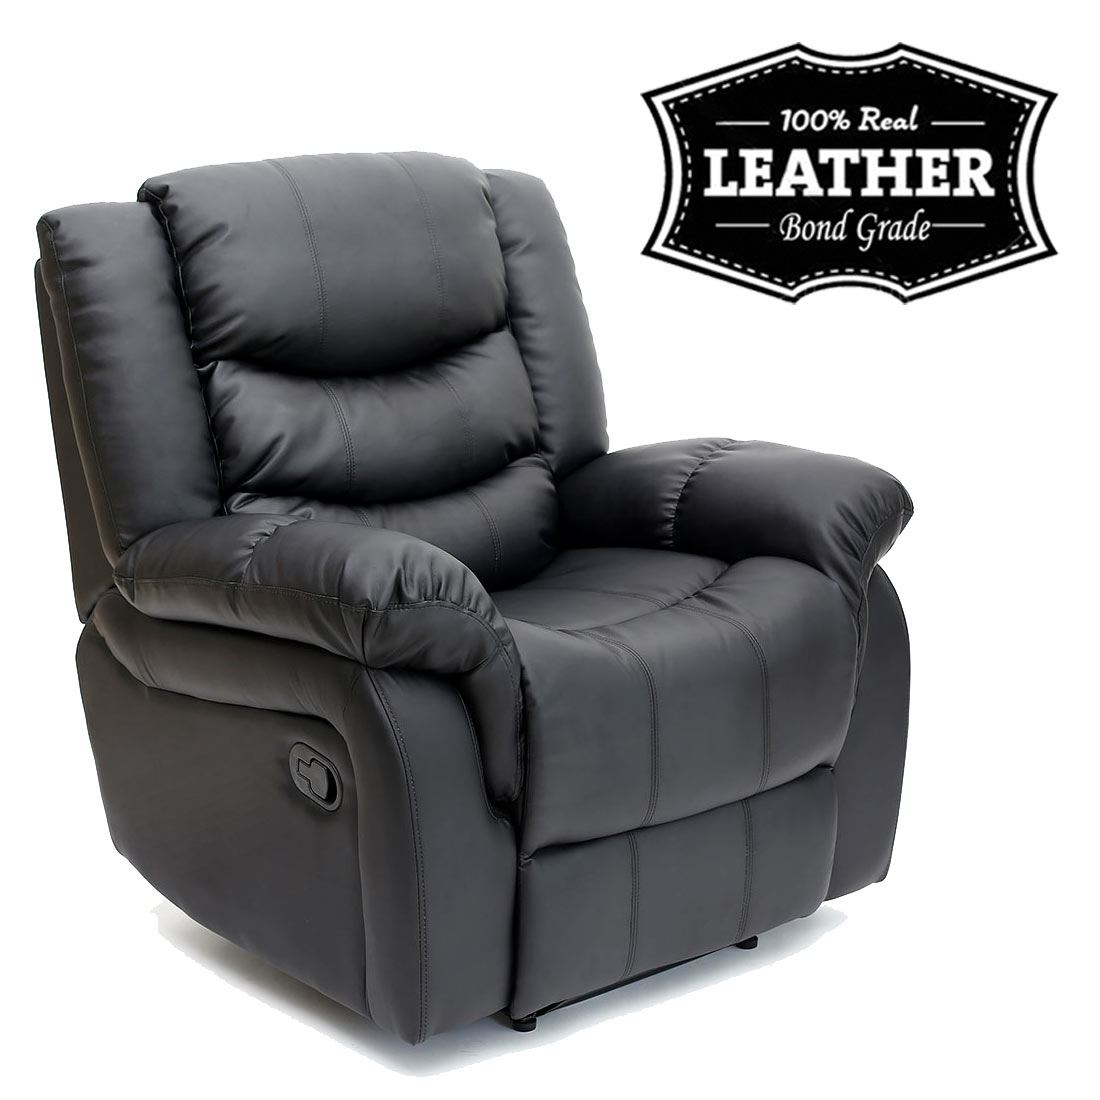 Exceptionnel SEATTLE LEATHER RECLINER ARMCHAIR SOFA HOME LOUNGE CHAIR